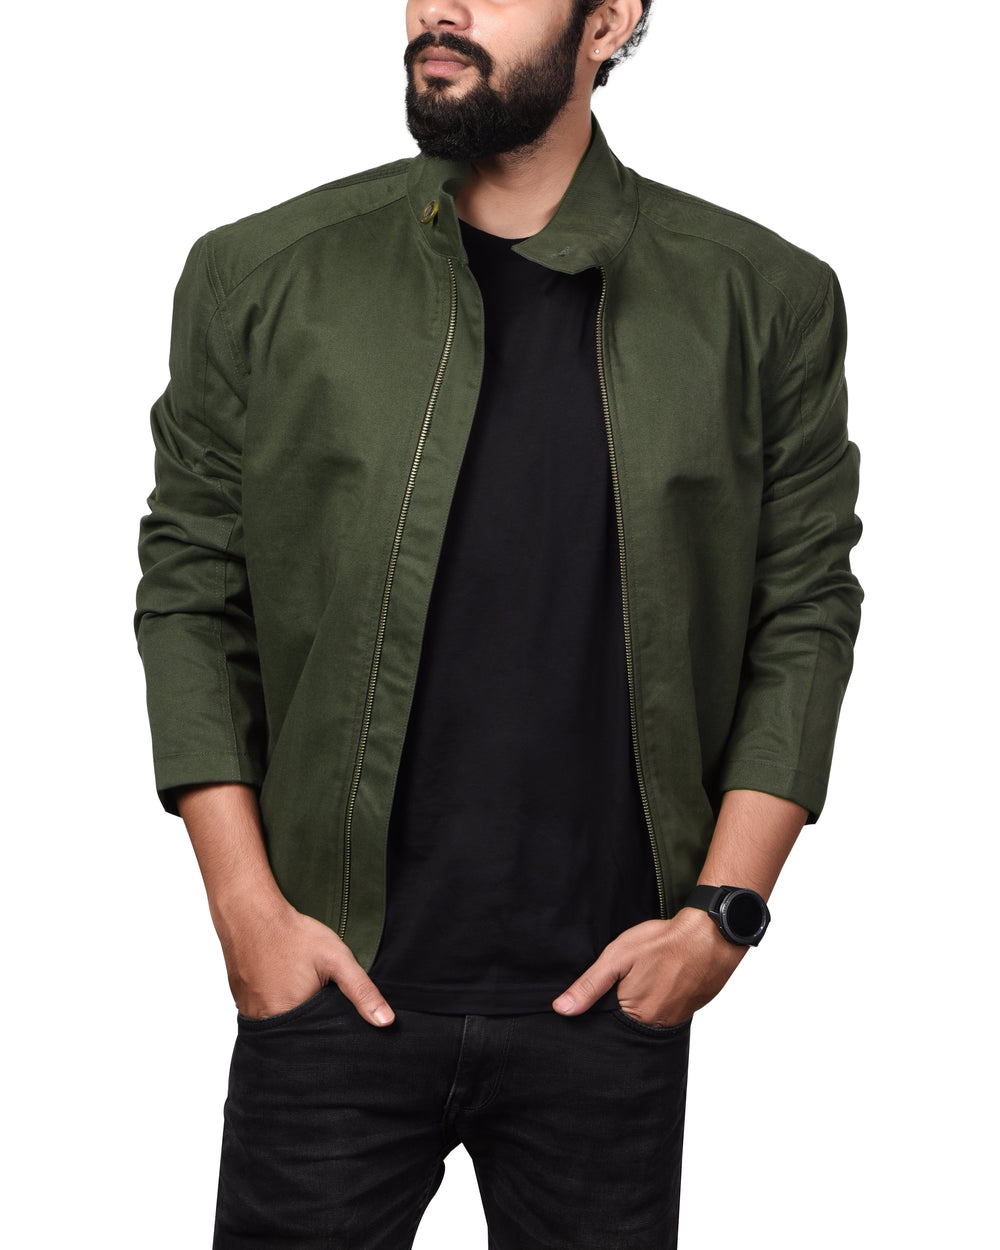 Juniper Green Cotton Twill Bomber Jacket